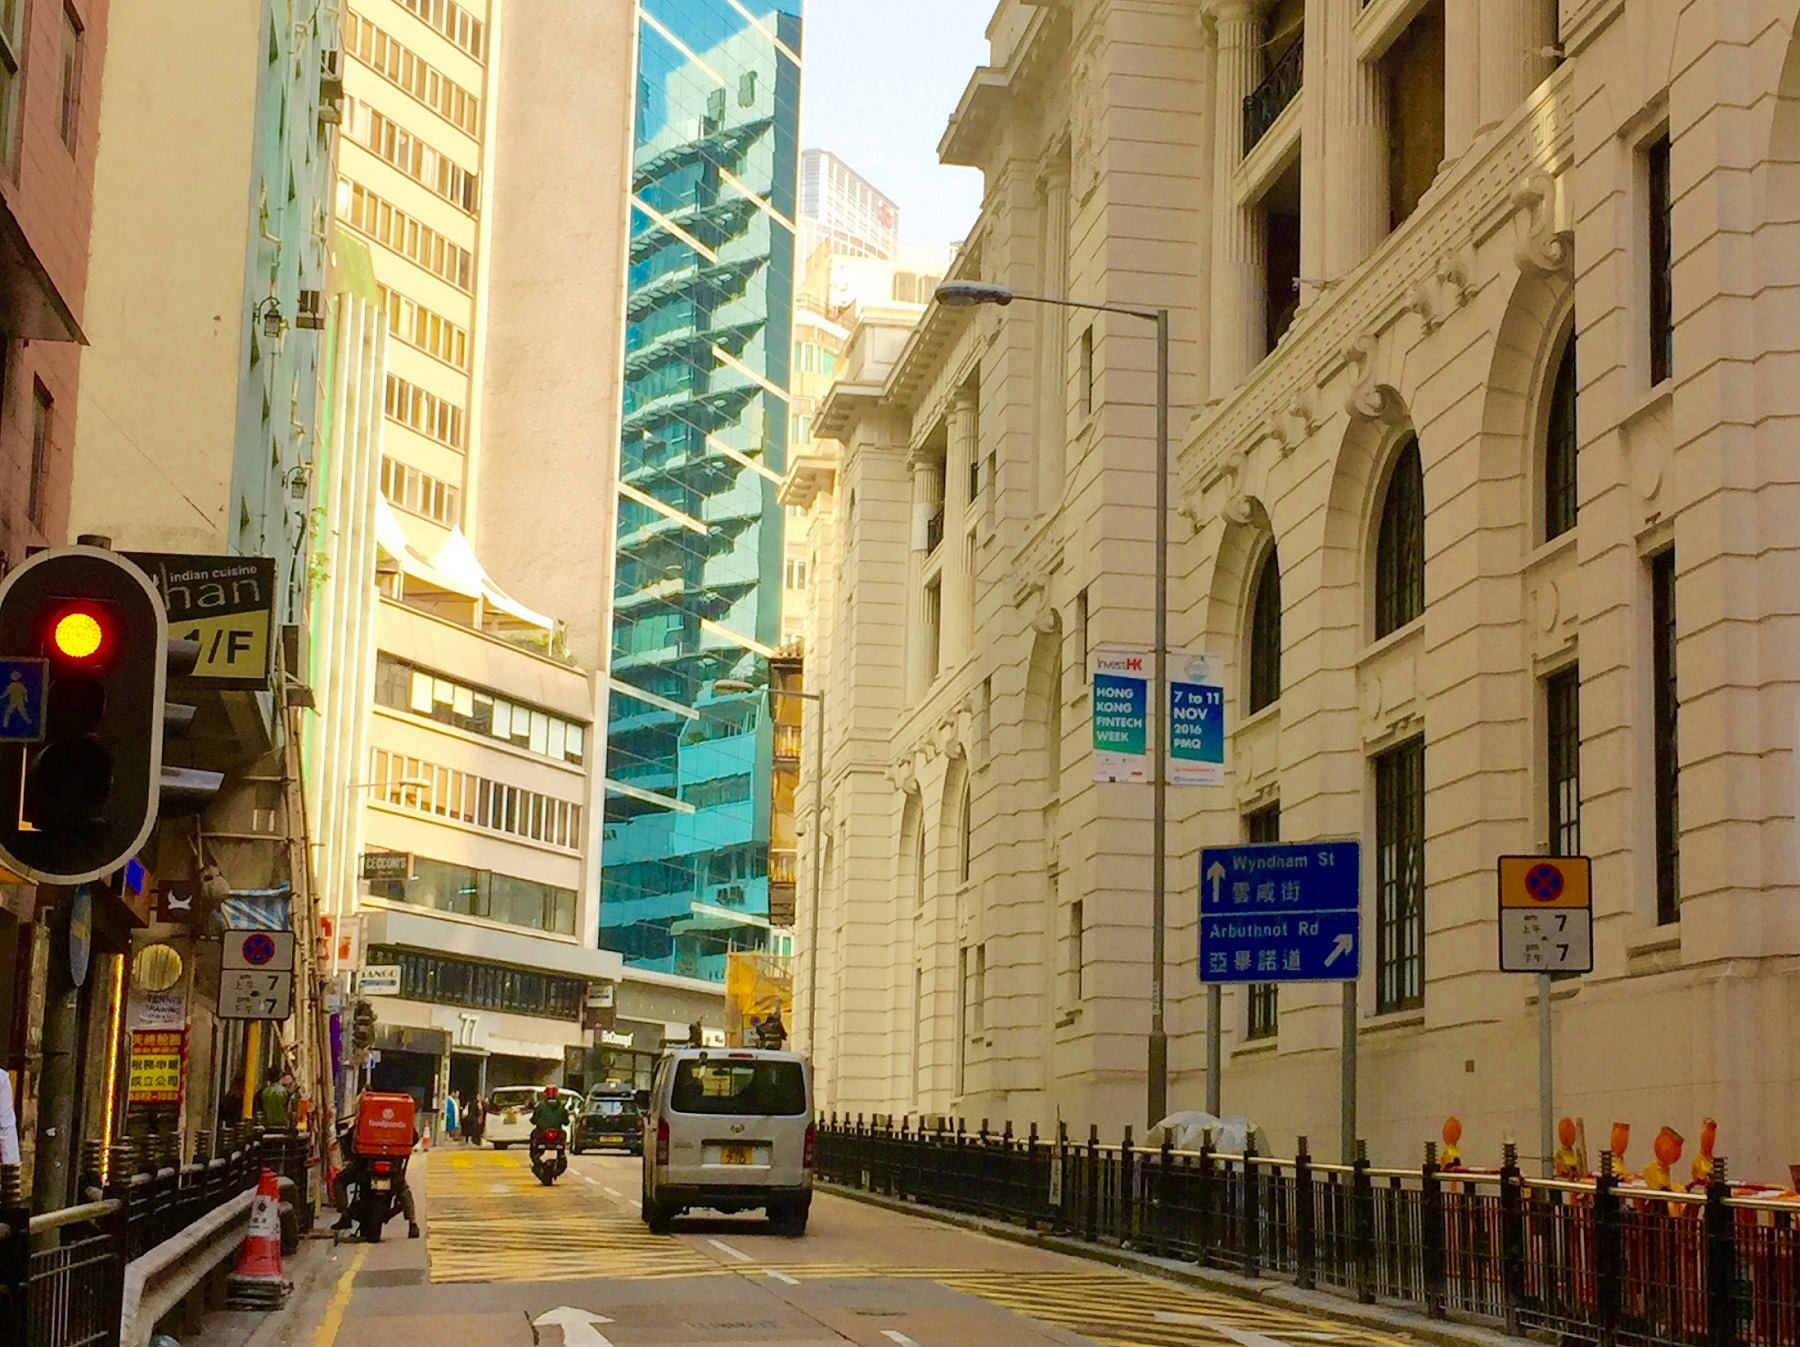 Hollywood Road connects foodie traffic from Wyndham Street Central